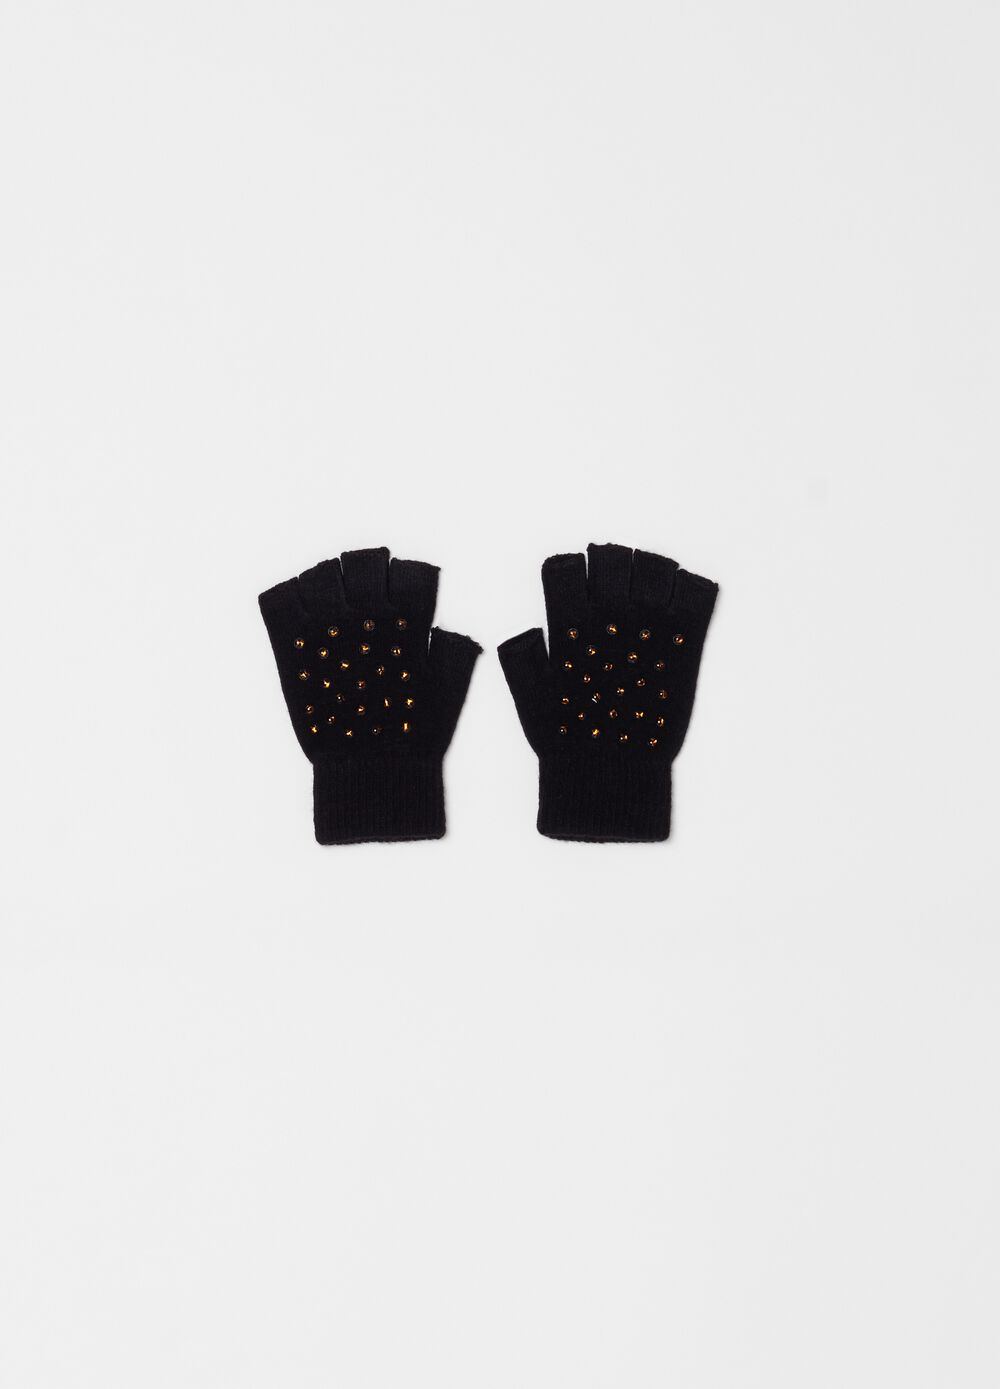 Fingerless gloves with small animal print studs